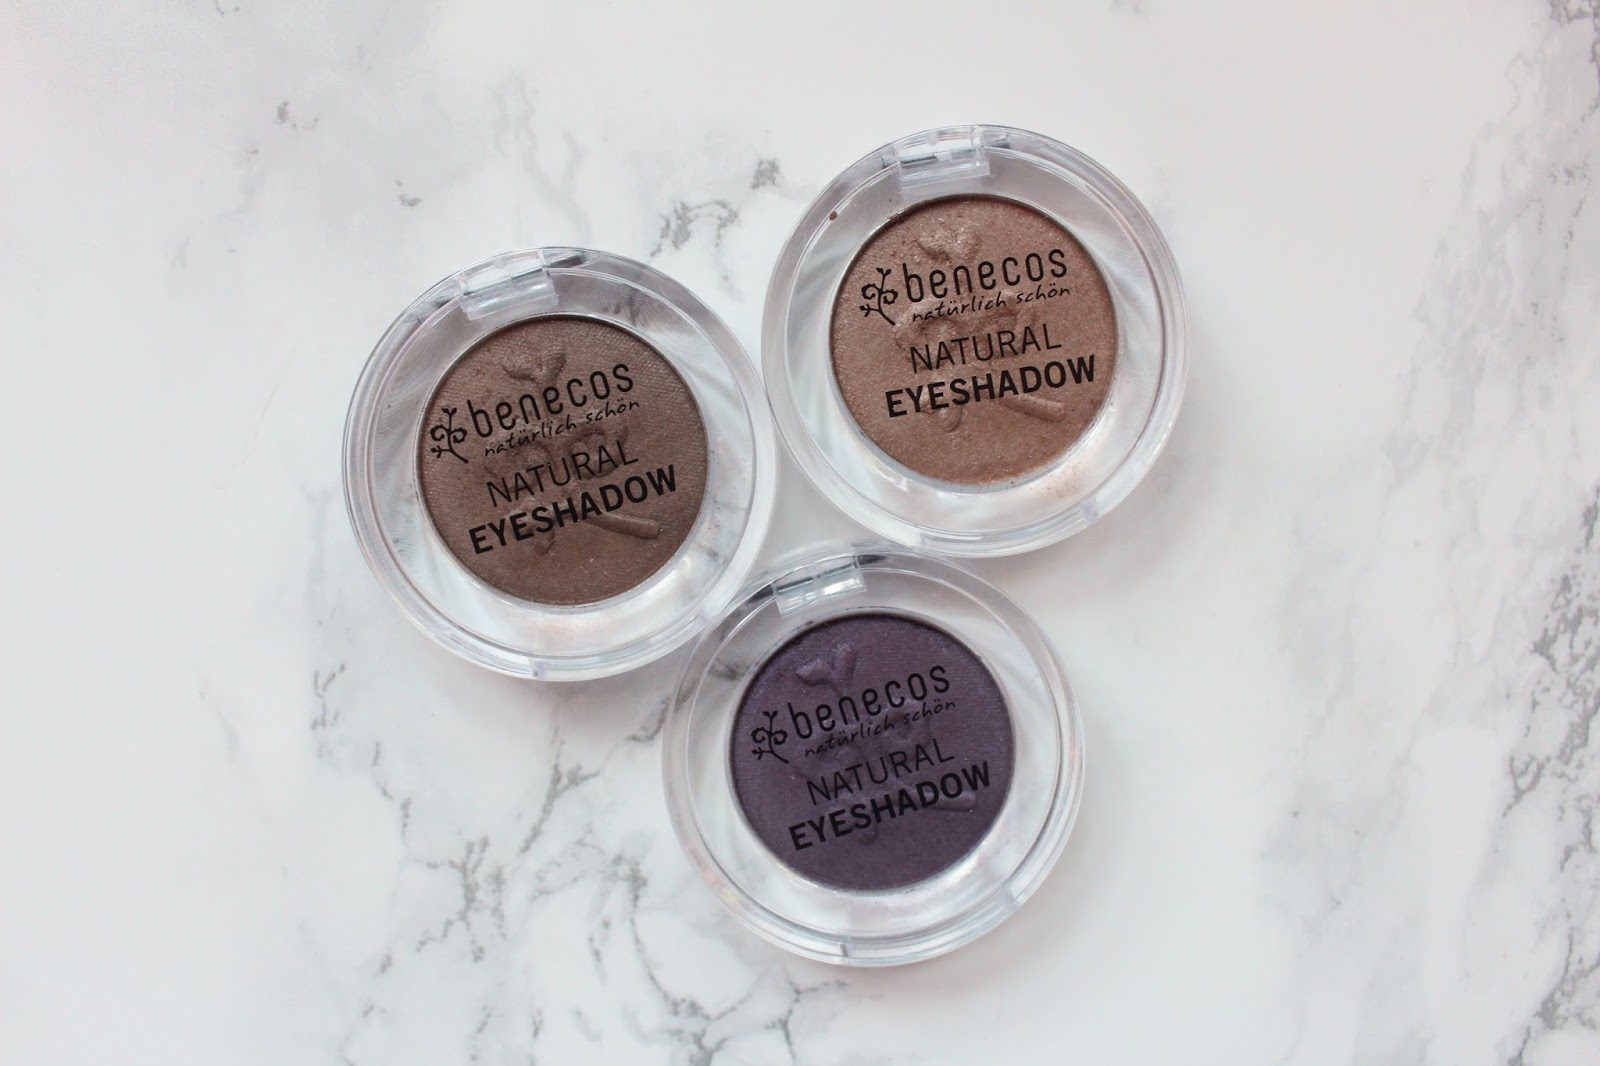 Benecos Eyeshadows